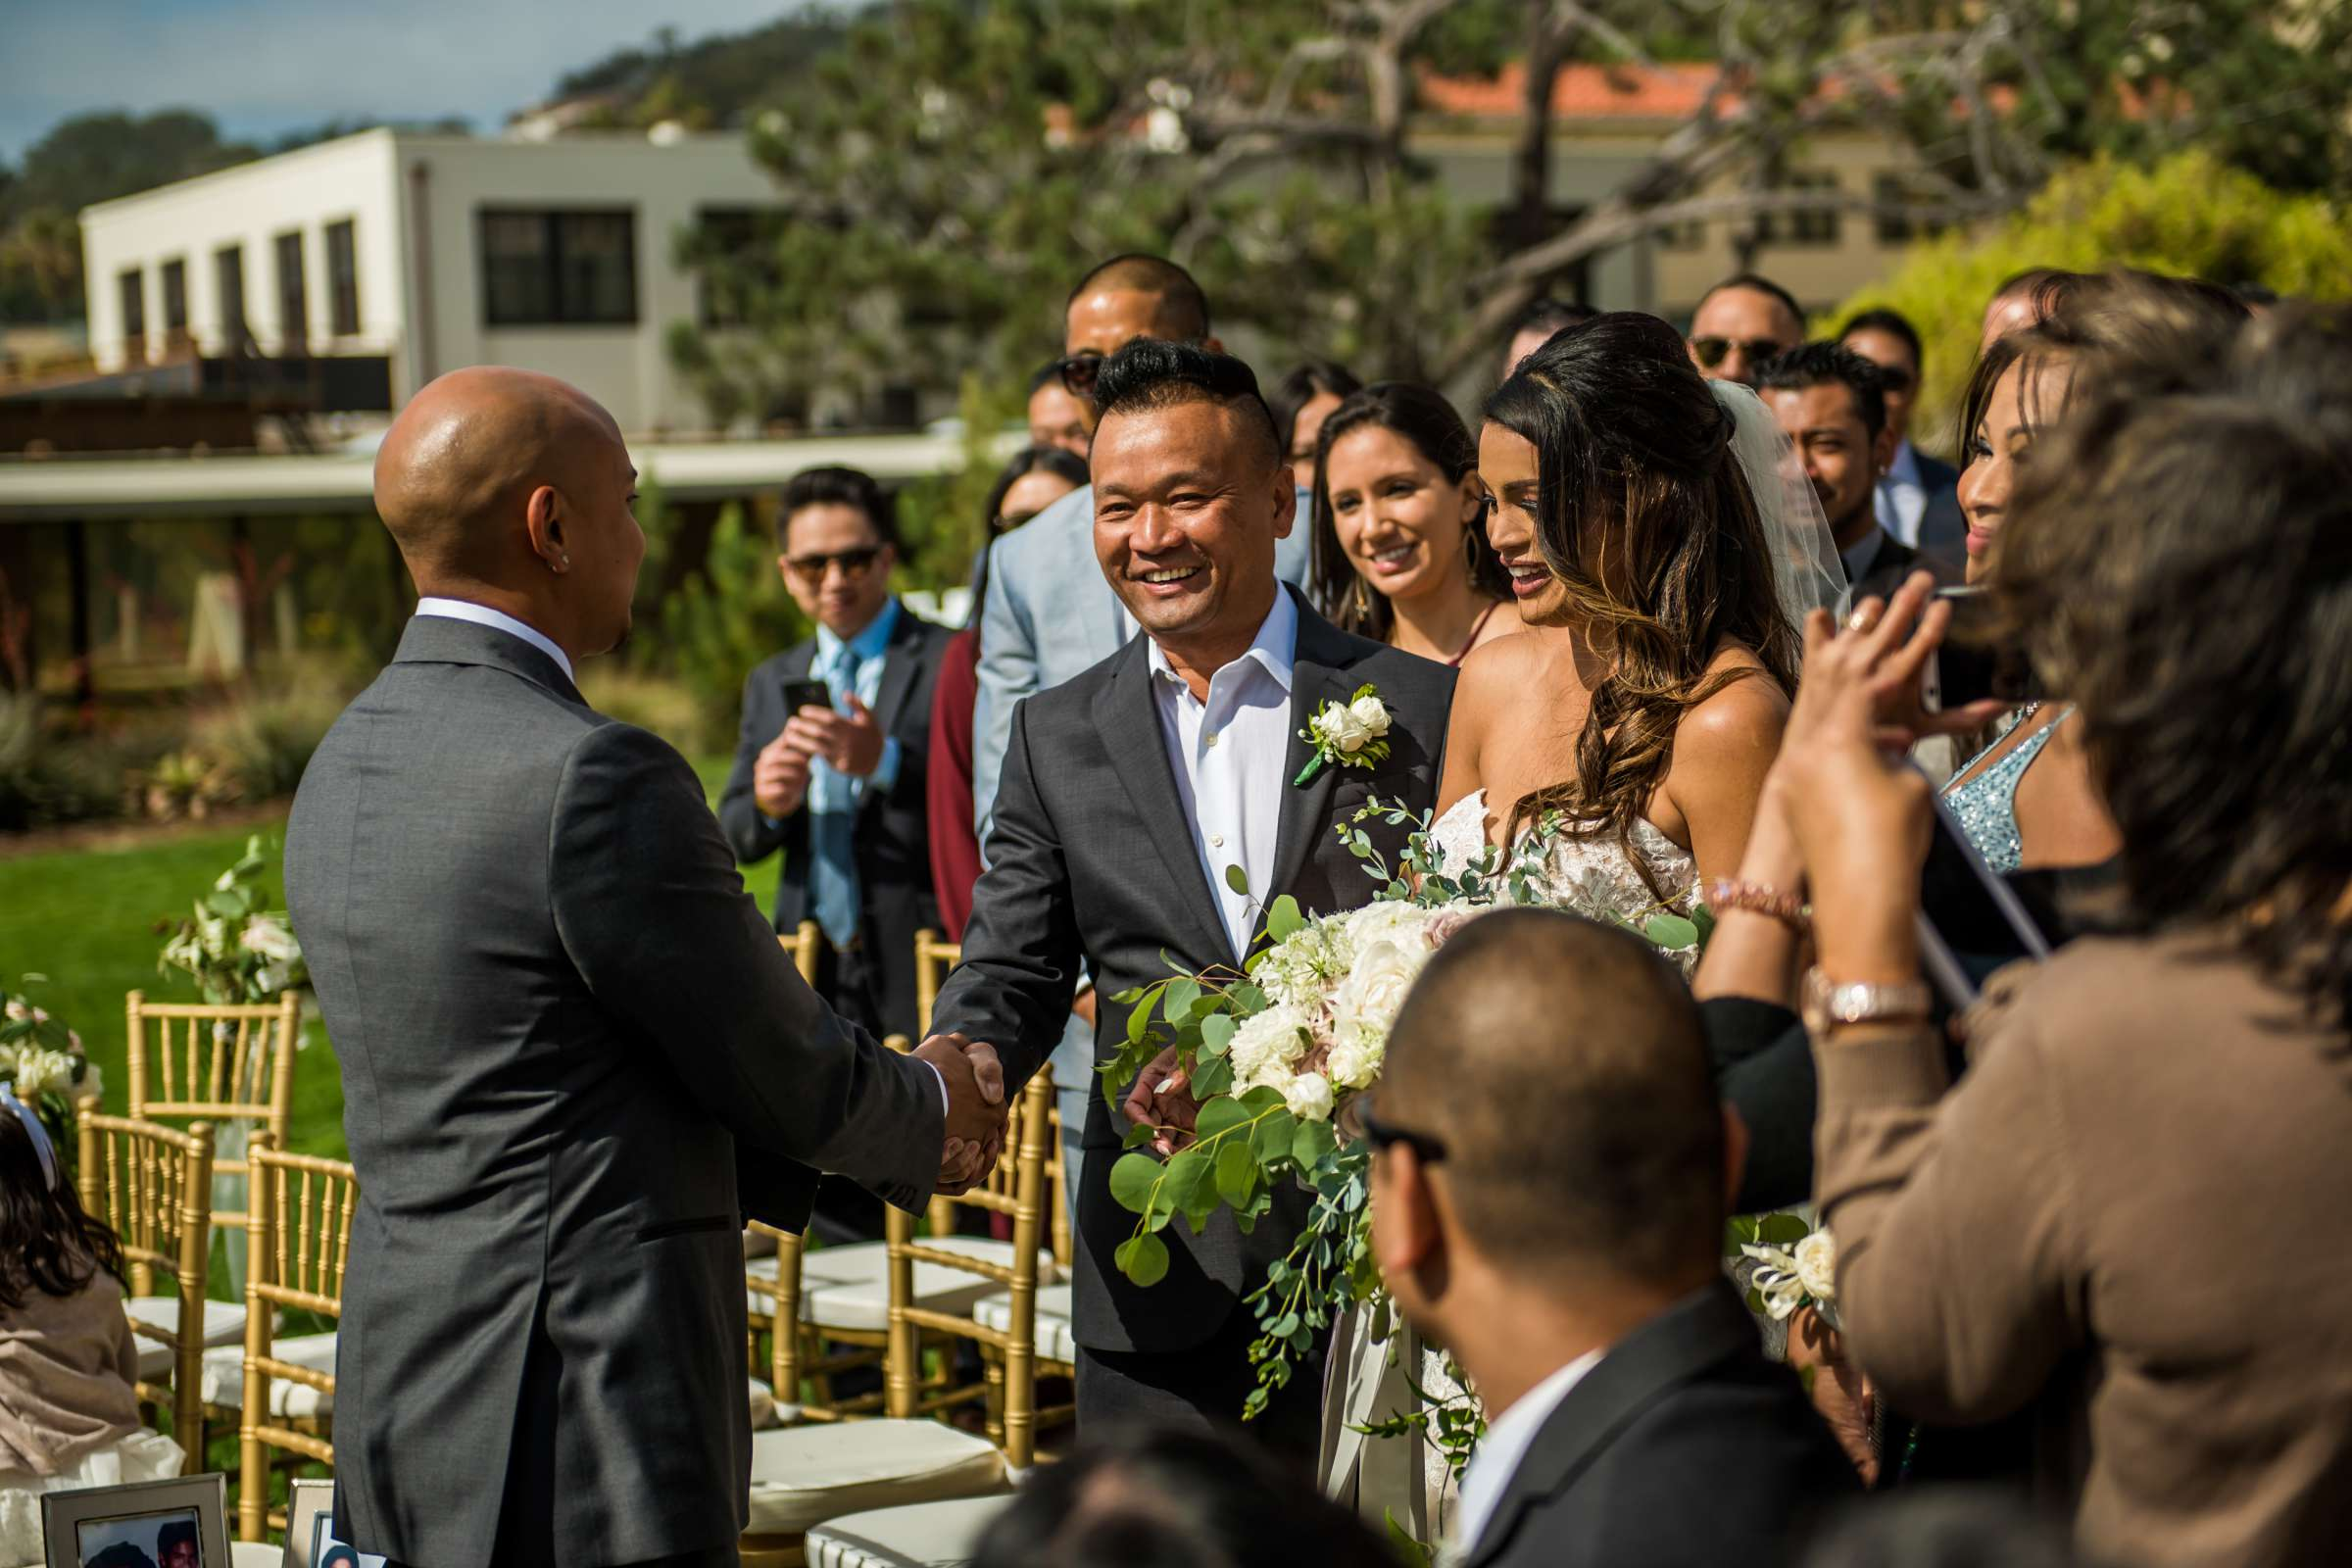 Scripps Seaside Forum Wedding coordinated by Lavish Weddings, Cindy and Justin Wedding Photo #381818 by True Photography